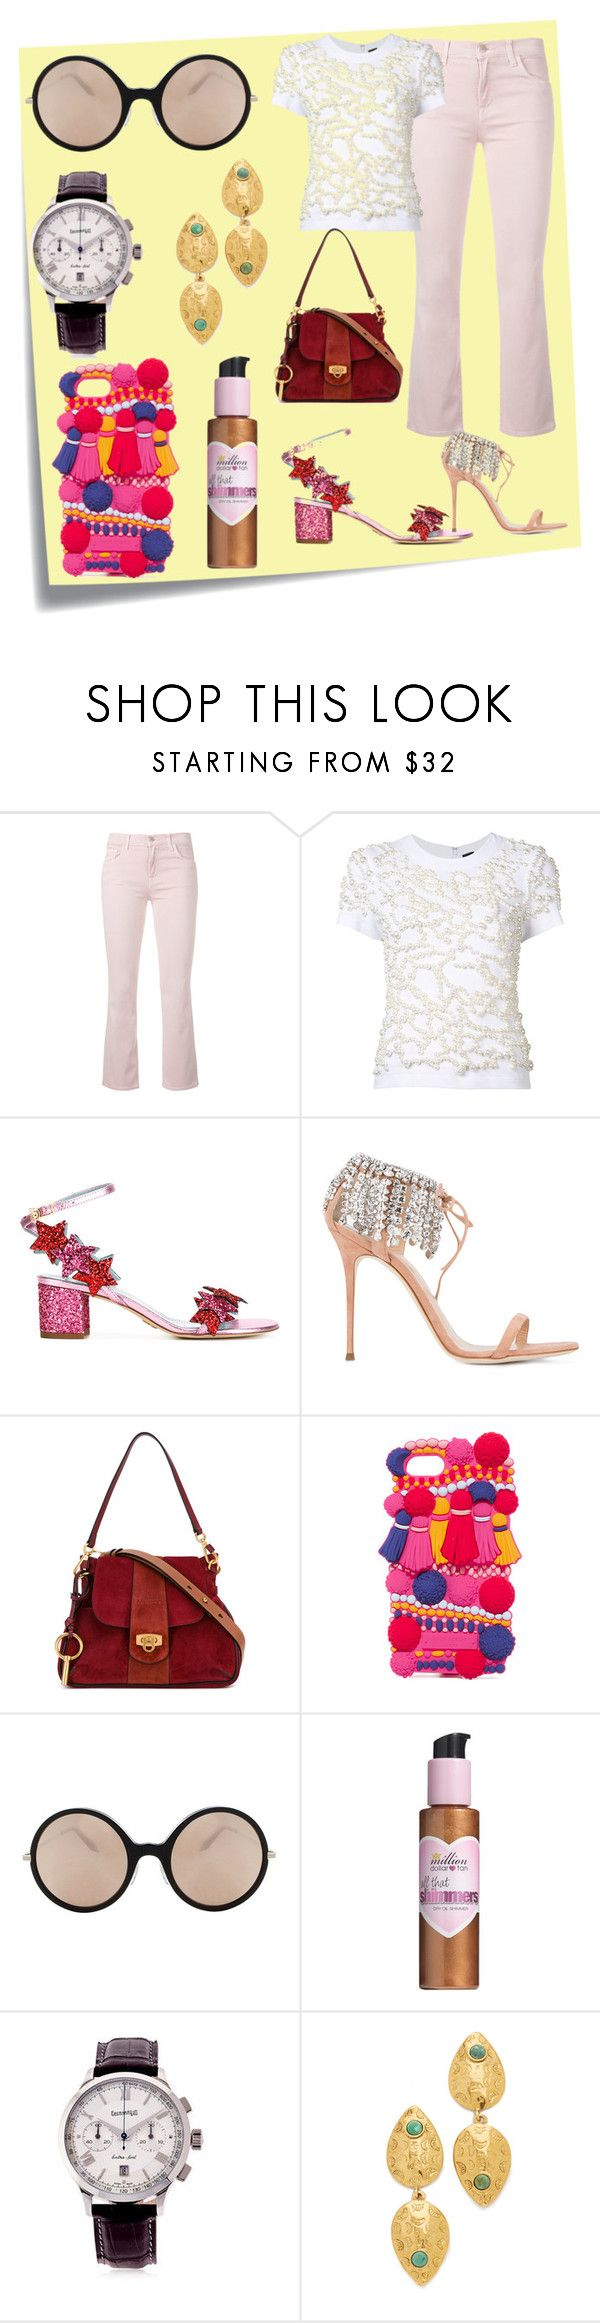 """Ultimate choice"" by denisee-denisee ❤ liked on Polyvore featuring Post-It, J Brand, Vera Wang, Chiara Ferragni, Giuseppe Zanotti, Kate Spade, Victoria Beckham, Million Dollar Tan, Eberhard & Co. and Lizzie Fortunato"